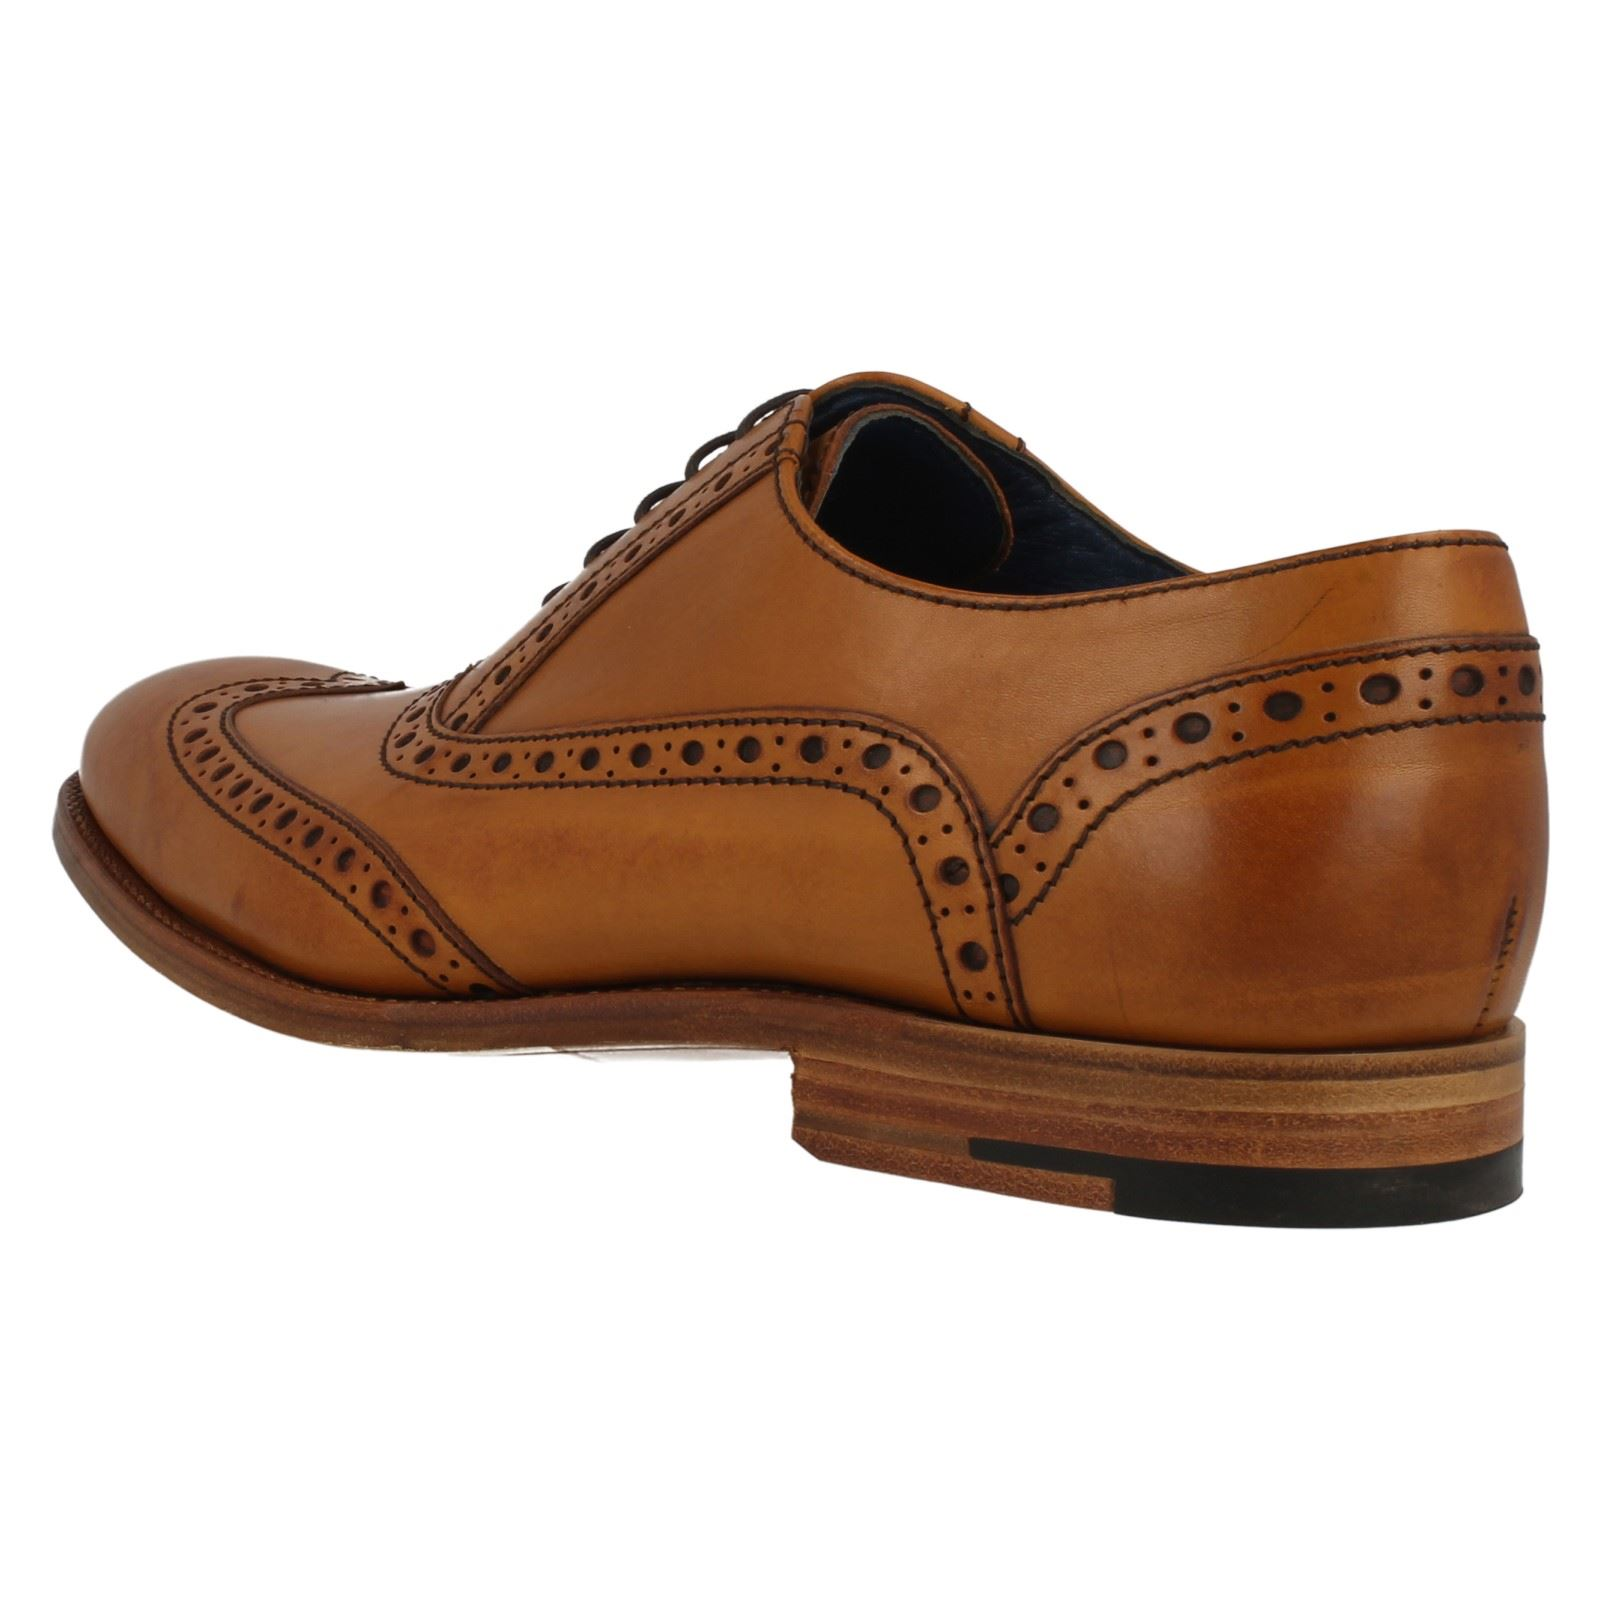 Uomo Barker Lace Up Brogue Schuhes Grant 382c95